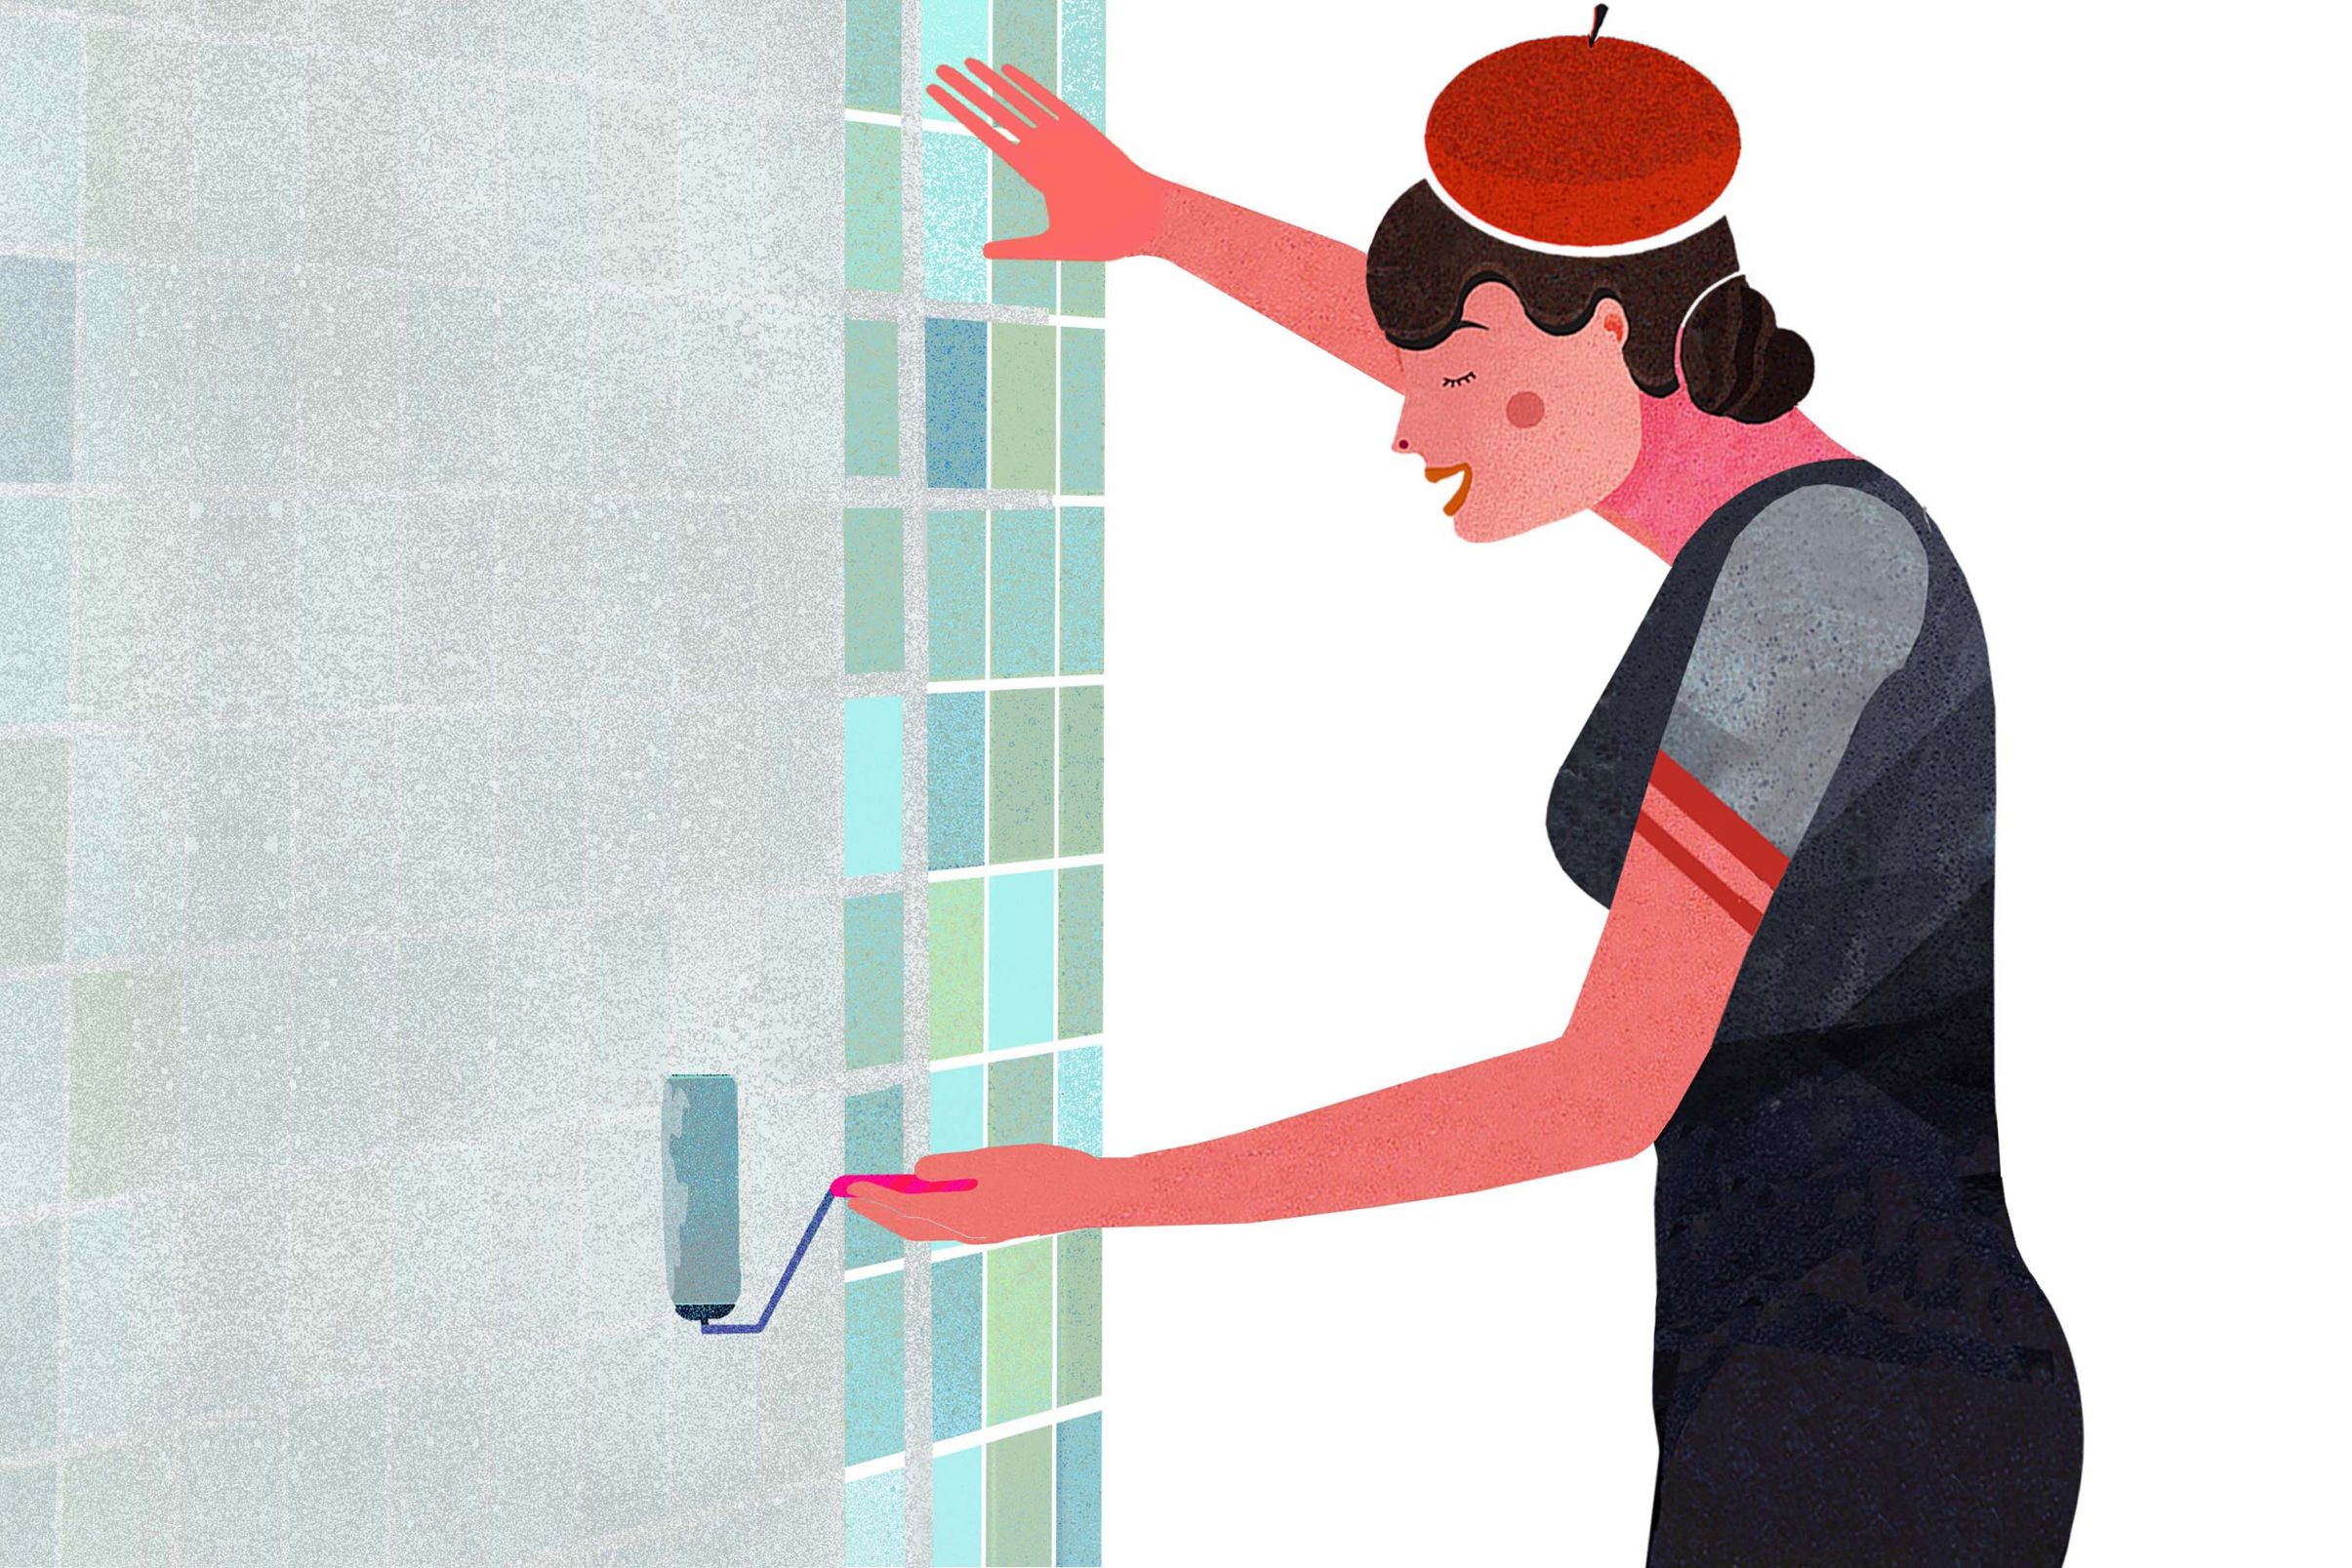 How-to-wallpaper-in-the-bathroom-Apply-deep-primer-twice-then-apply-lining-paper